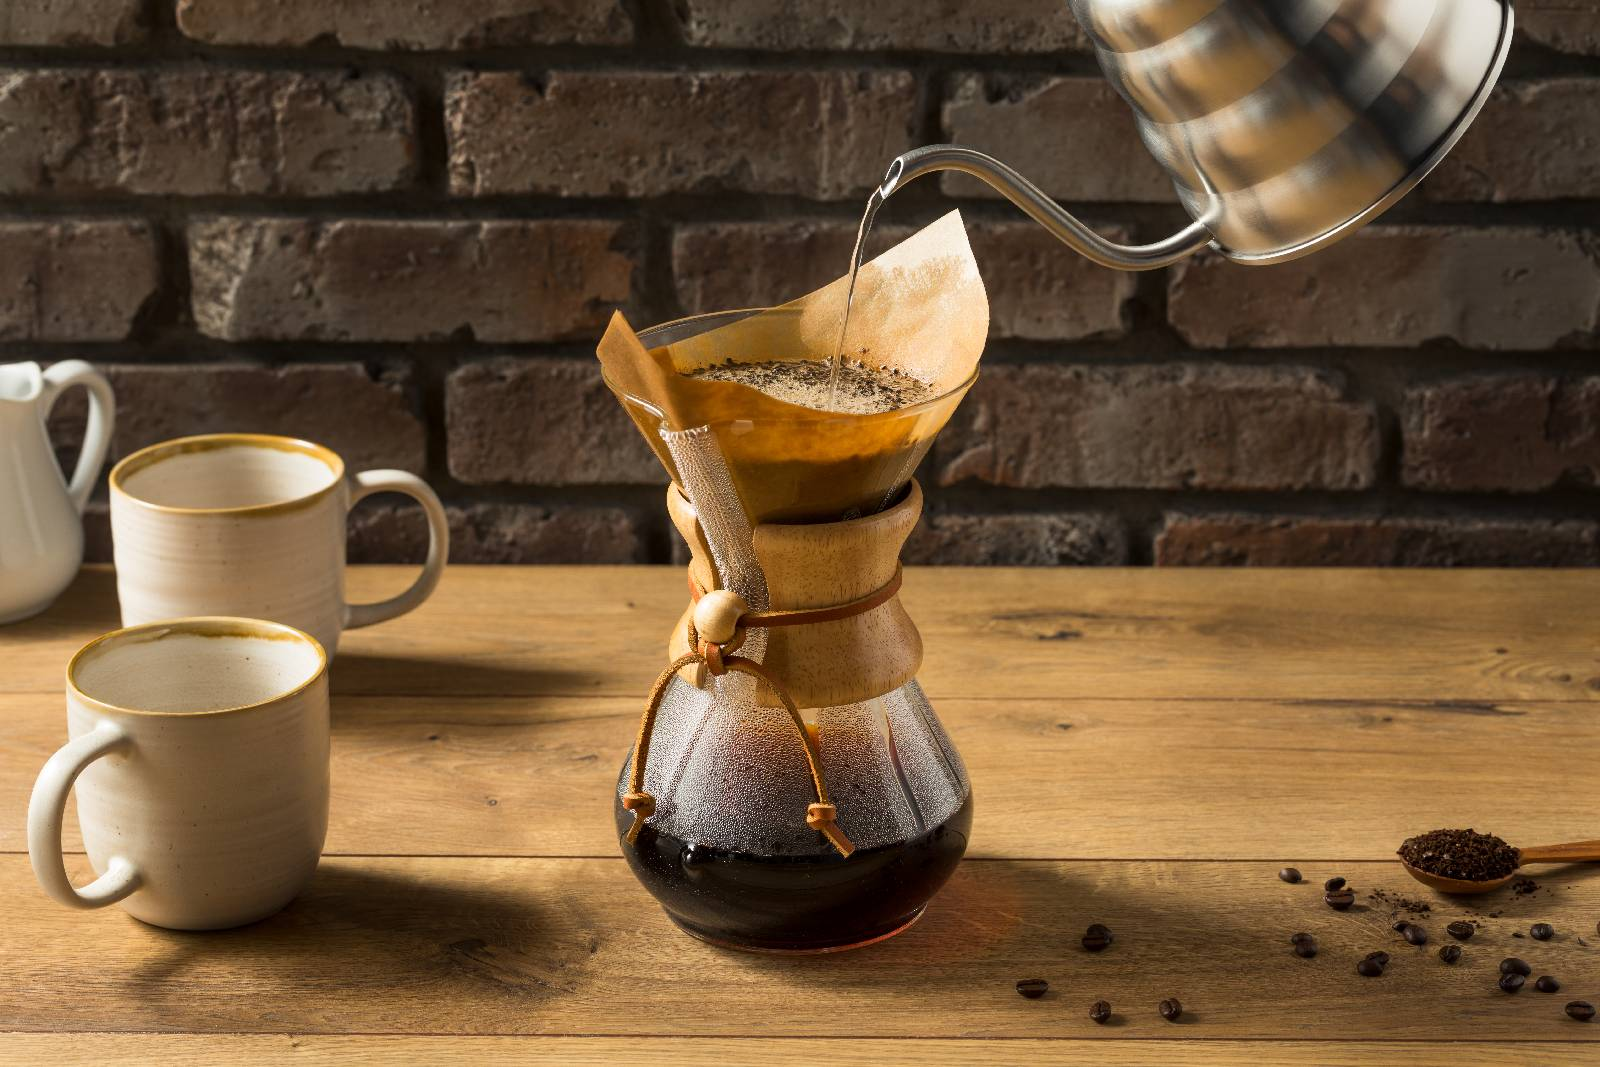 5 Ways To Make Coffee At Home - Homemade Pour Over Coffee with Chemex